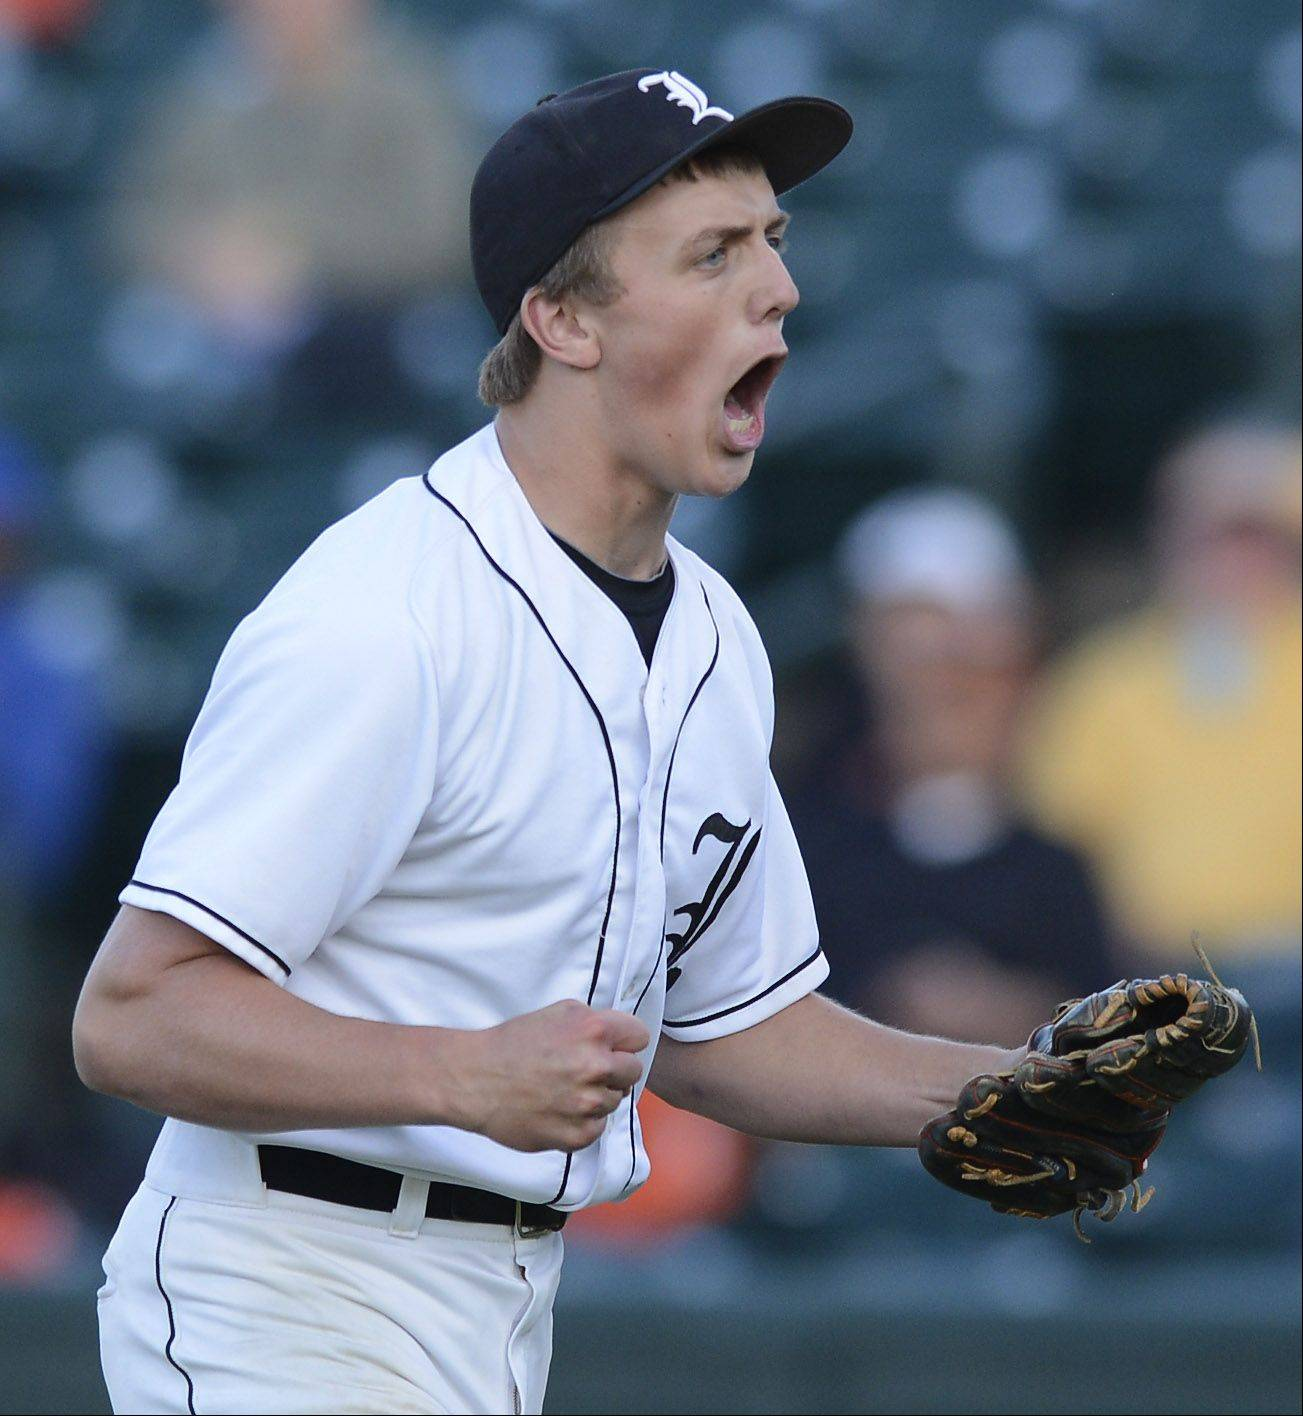 Libertyville pitcher Kevin Calamari celebrates after closing his team's 9-6 victory over St. Charles East.